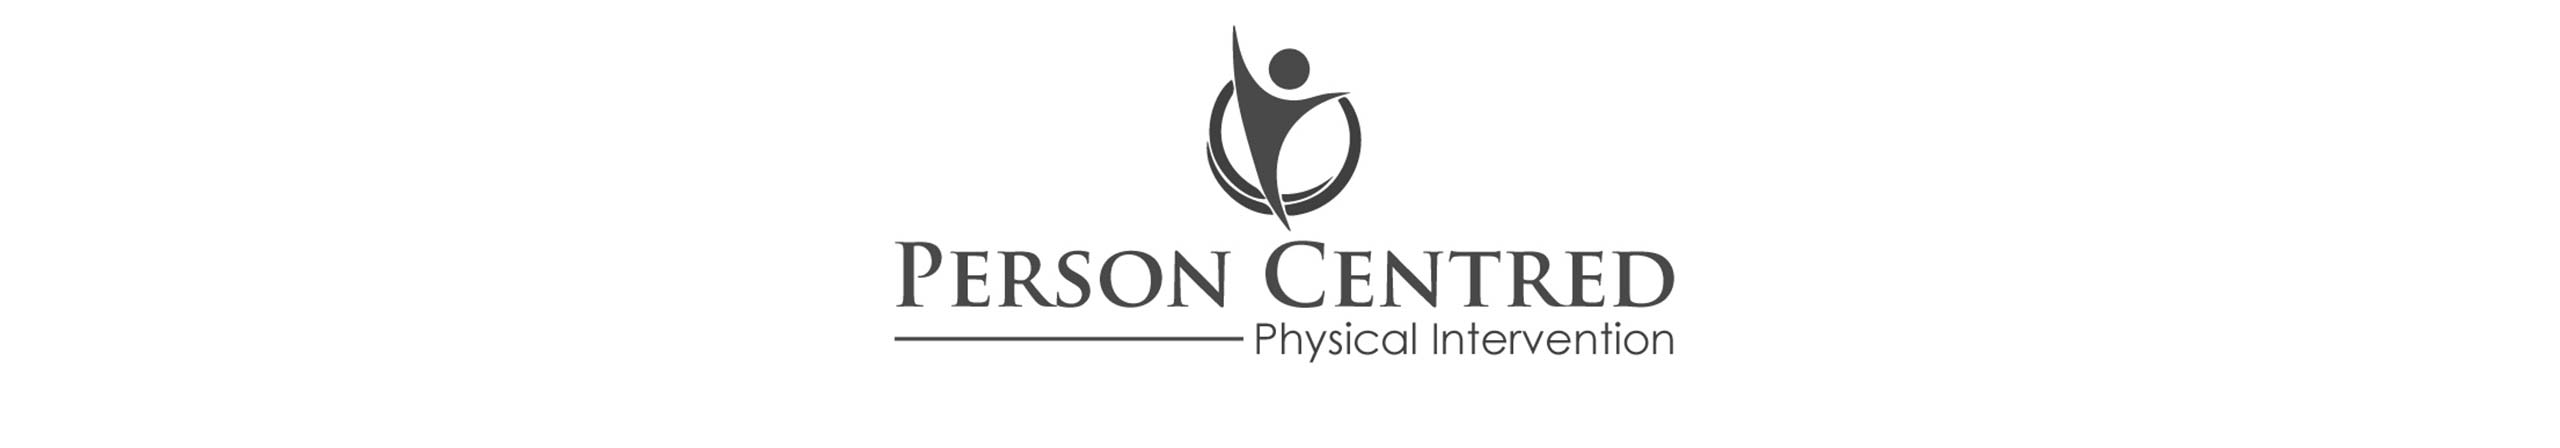 Person Centred Physical Intervention